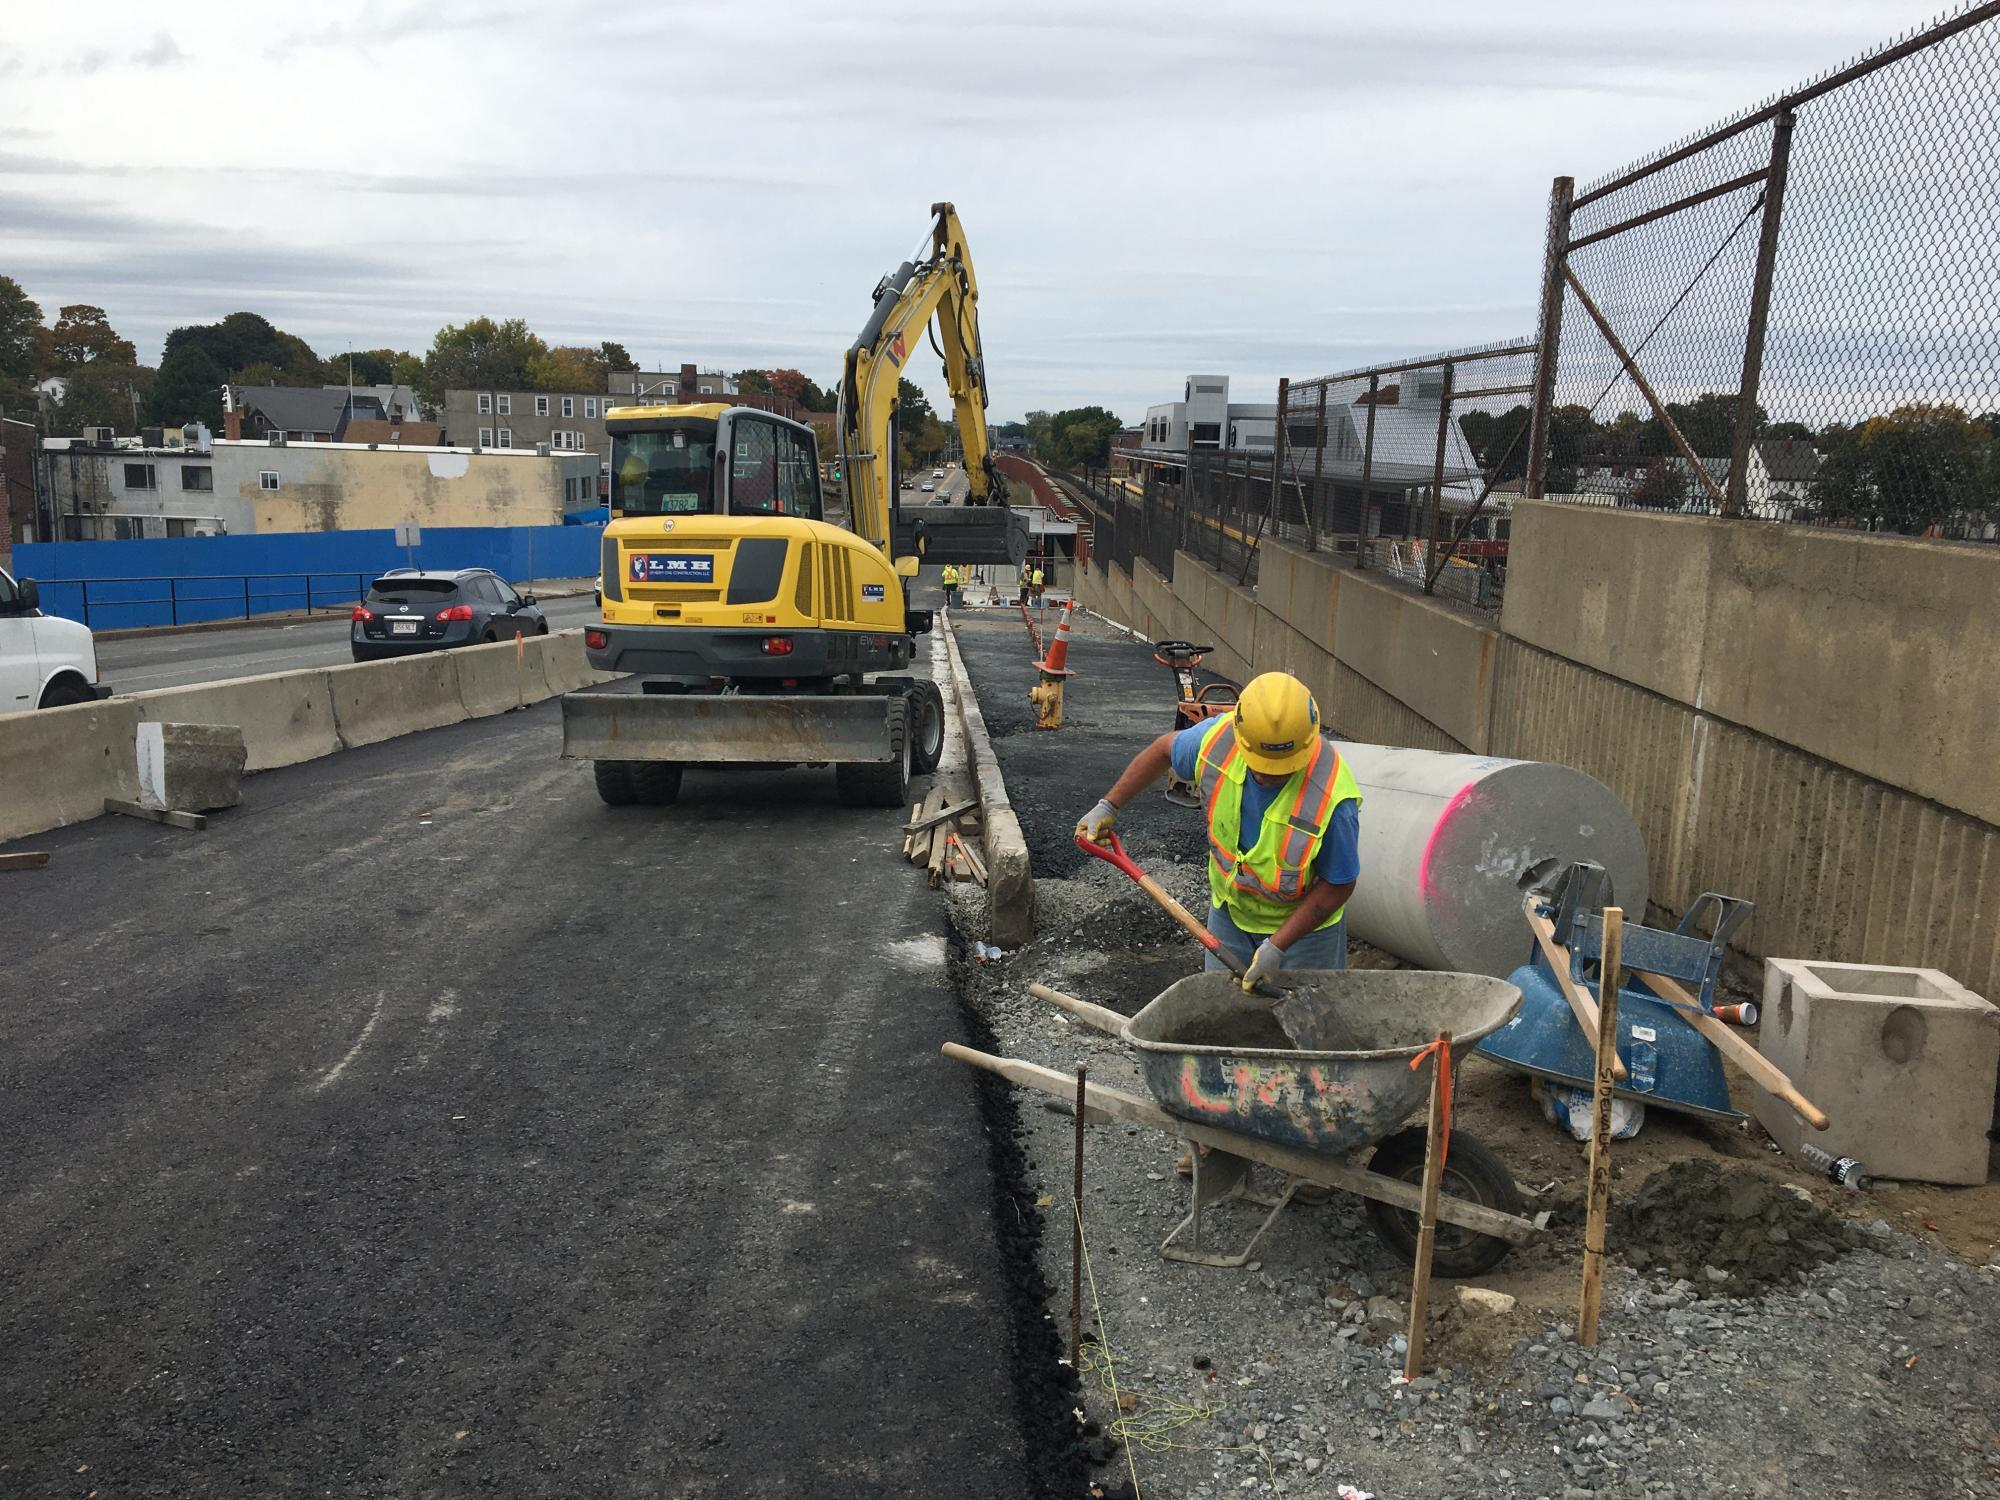 New sidewalk construction at Wollaston Station looking northbound (October 2019)